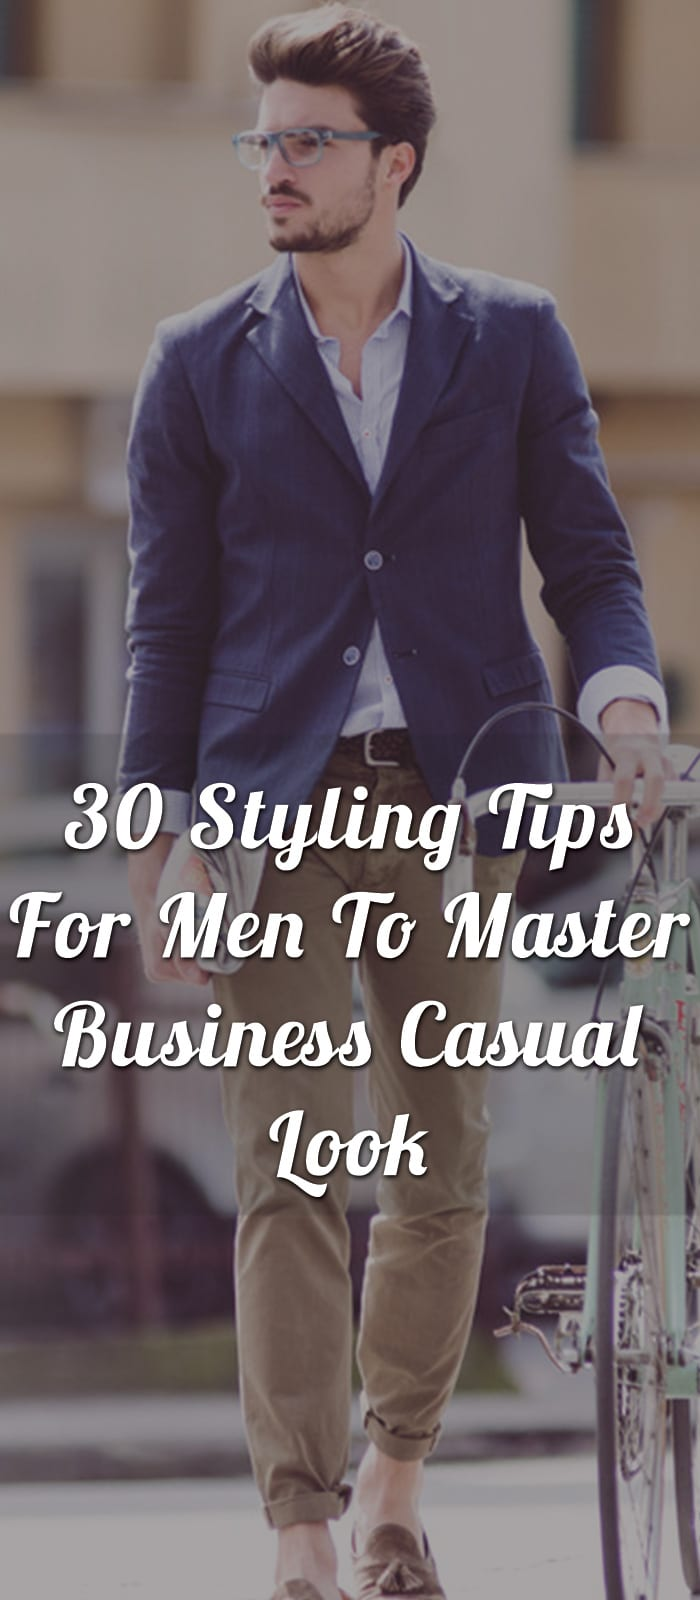 30-Styling-Tips-For-Men-To-Master-Business-Casual-Look